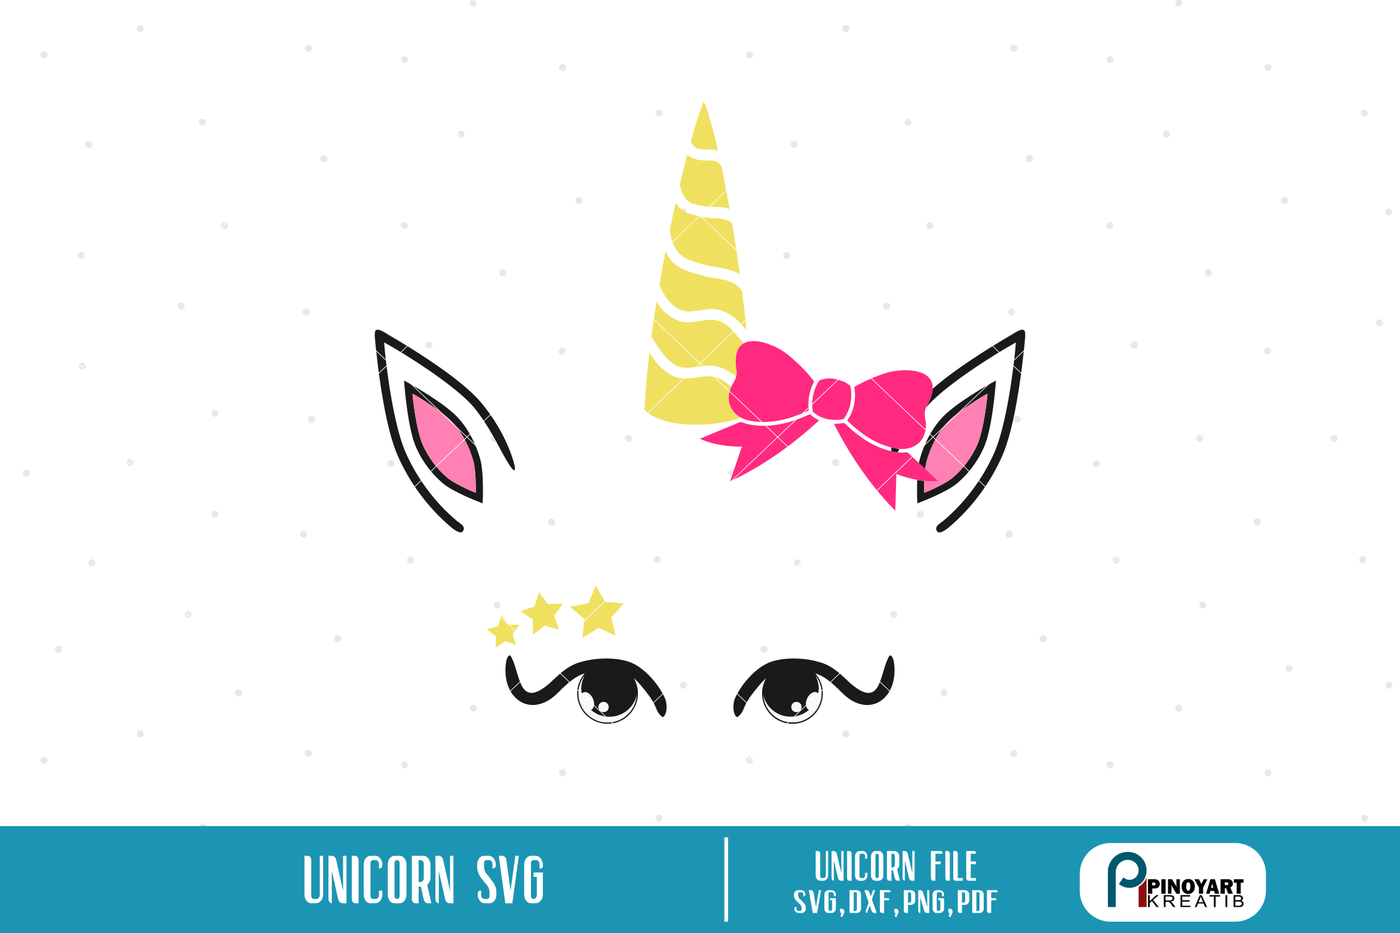 Unicorn Svg Unicorn Svg File Unicorn Dxf Unicorn Printables